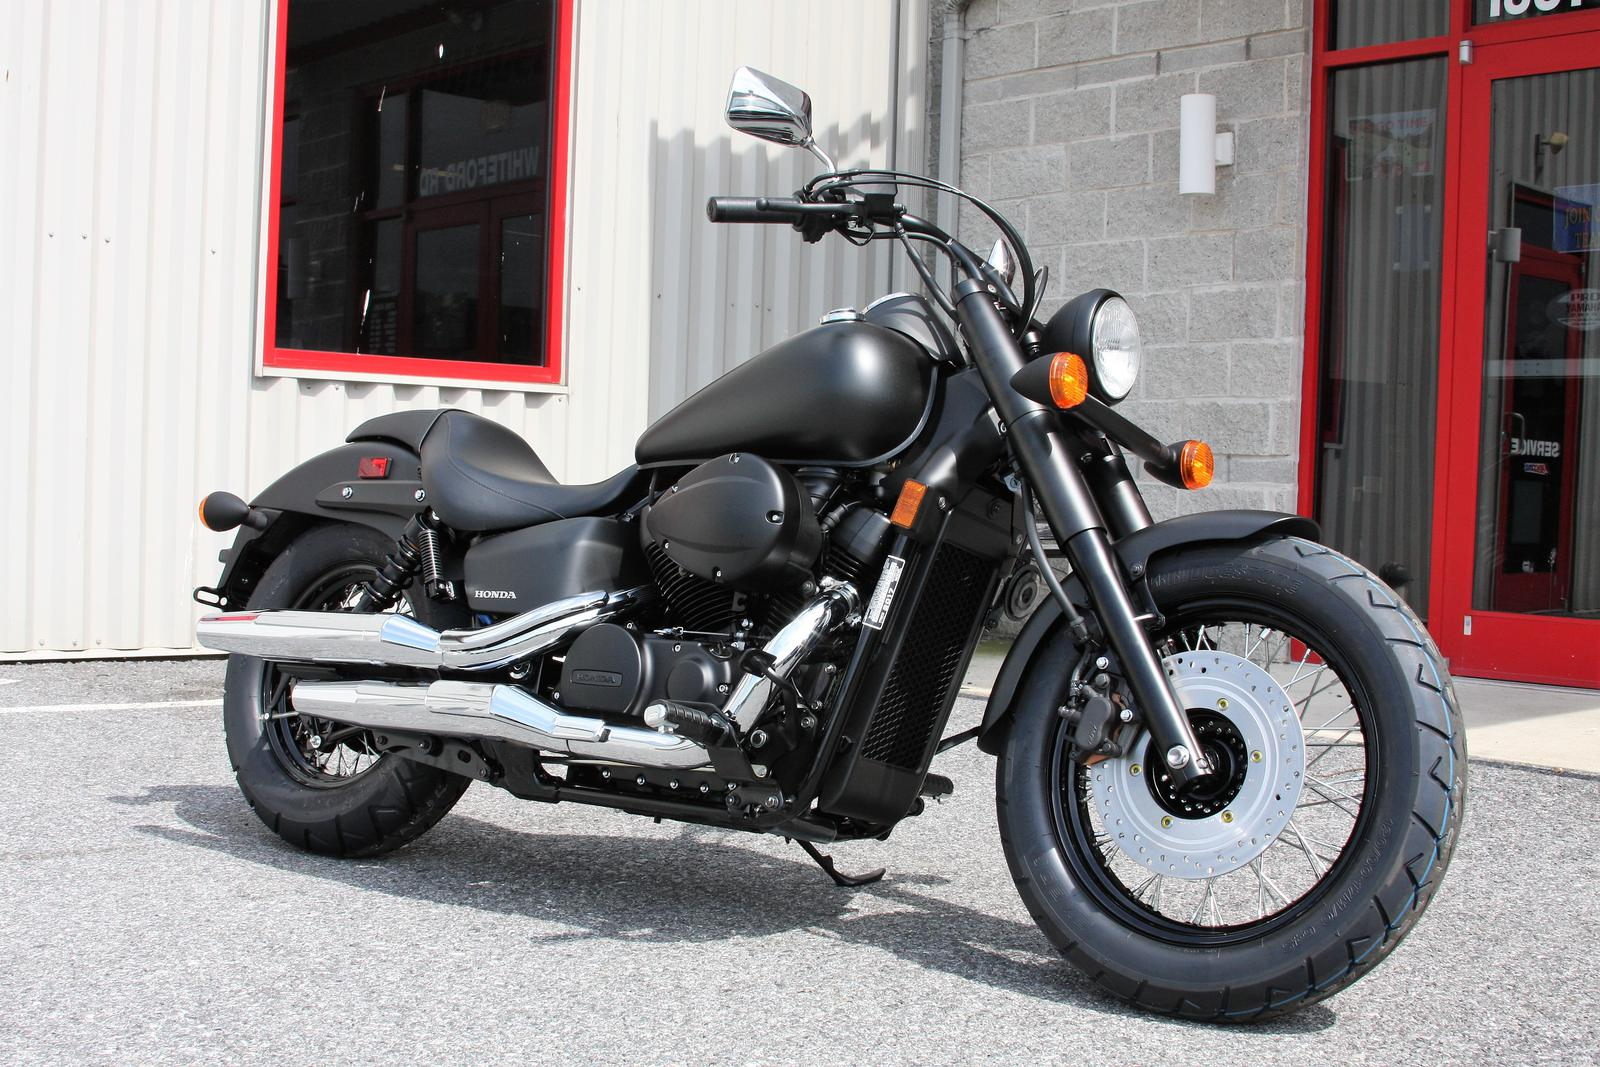 2018 Honda Shadow Phantom For Sale In York Pa Ams Action